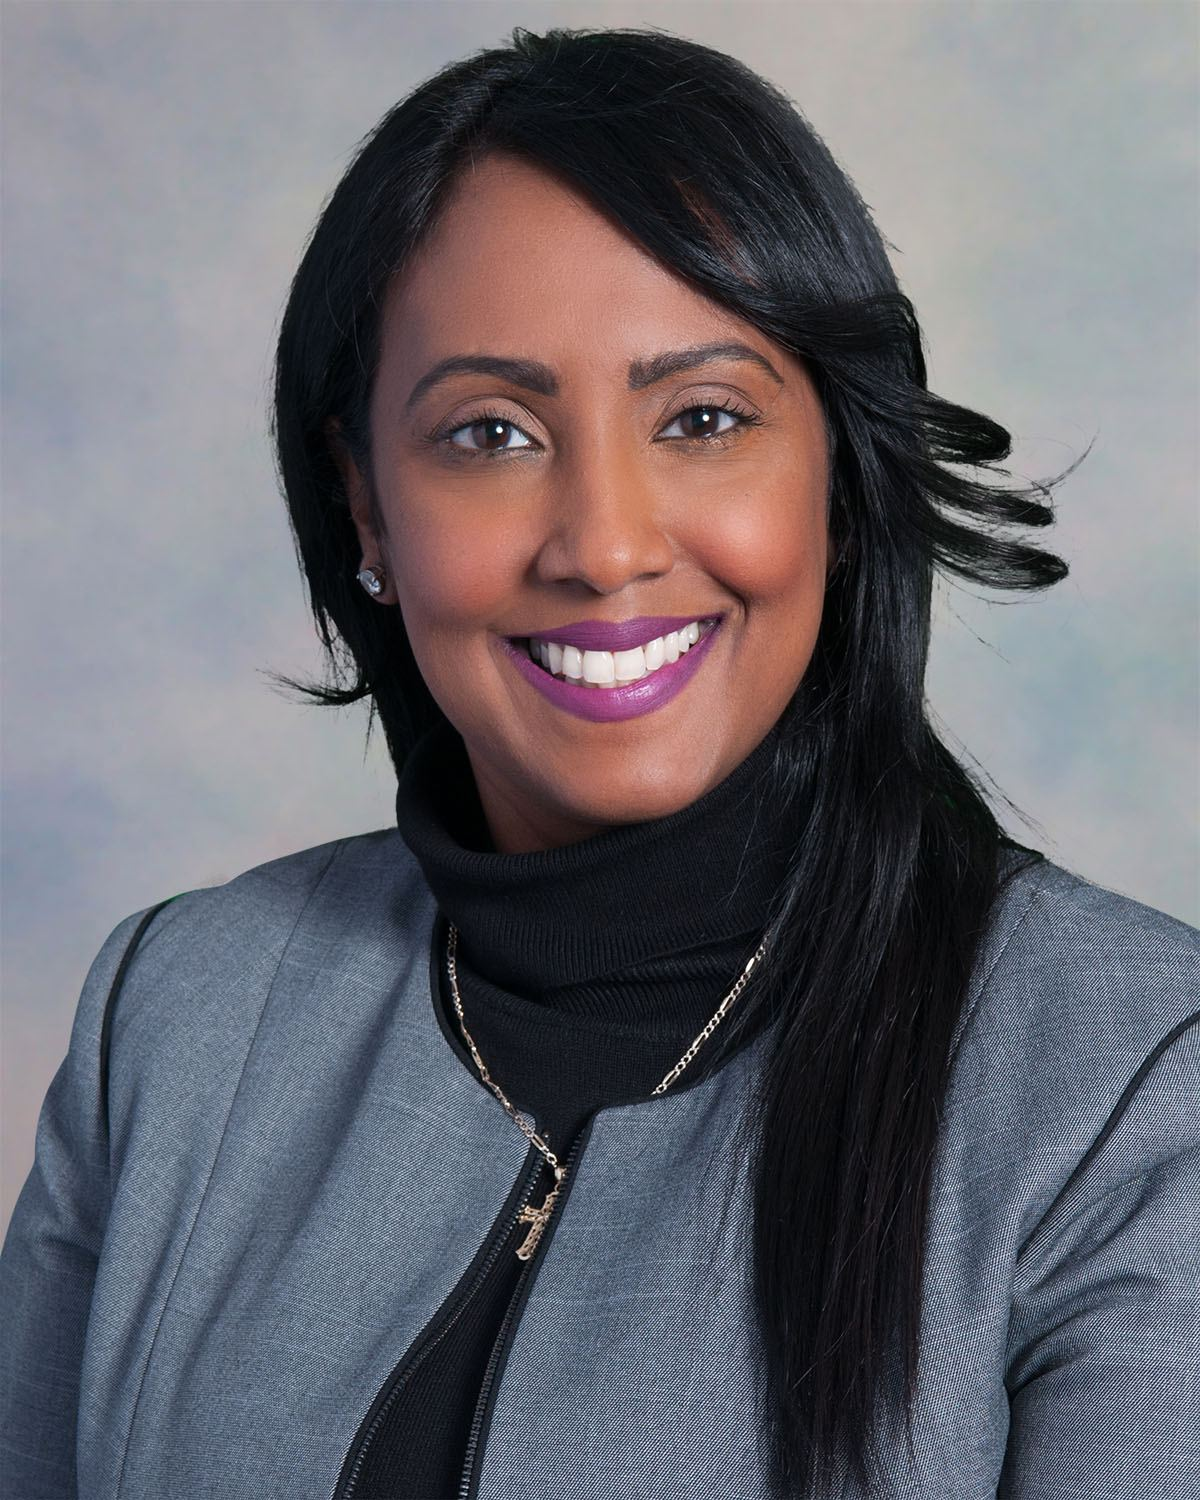 Headshot of Subrena Singh